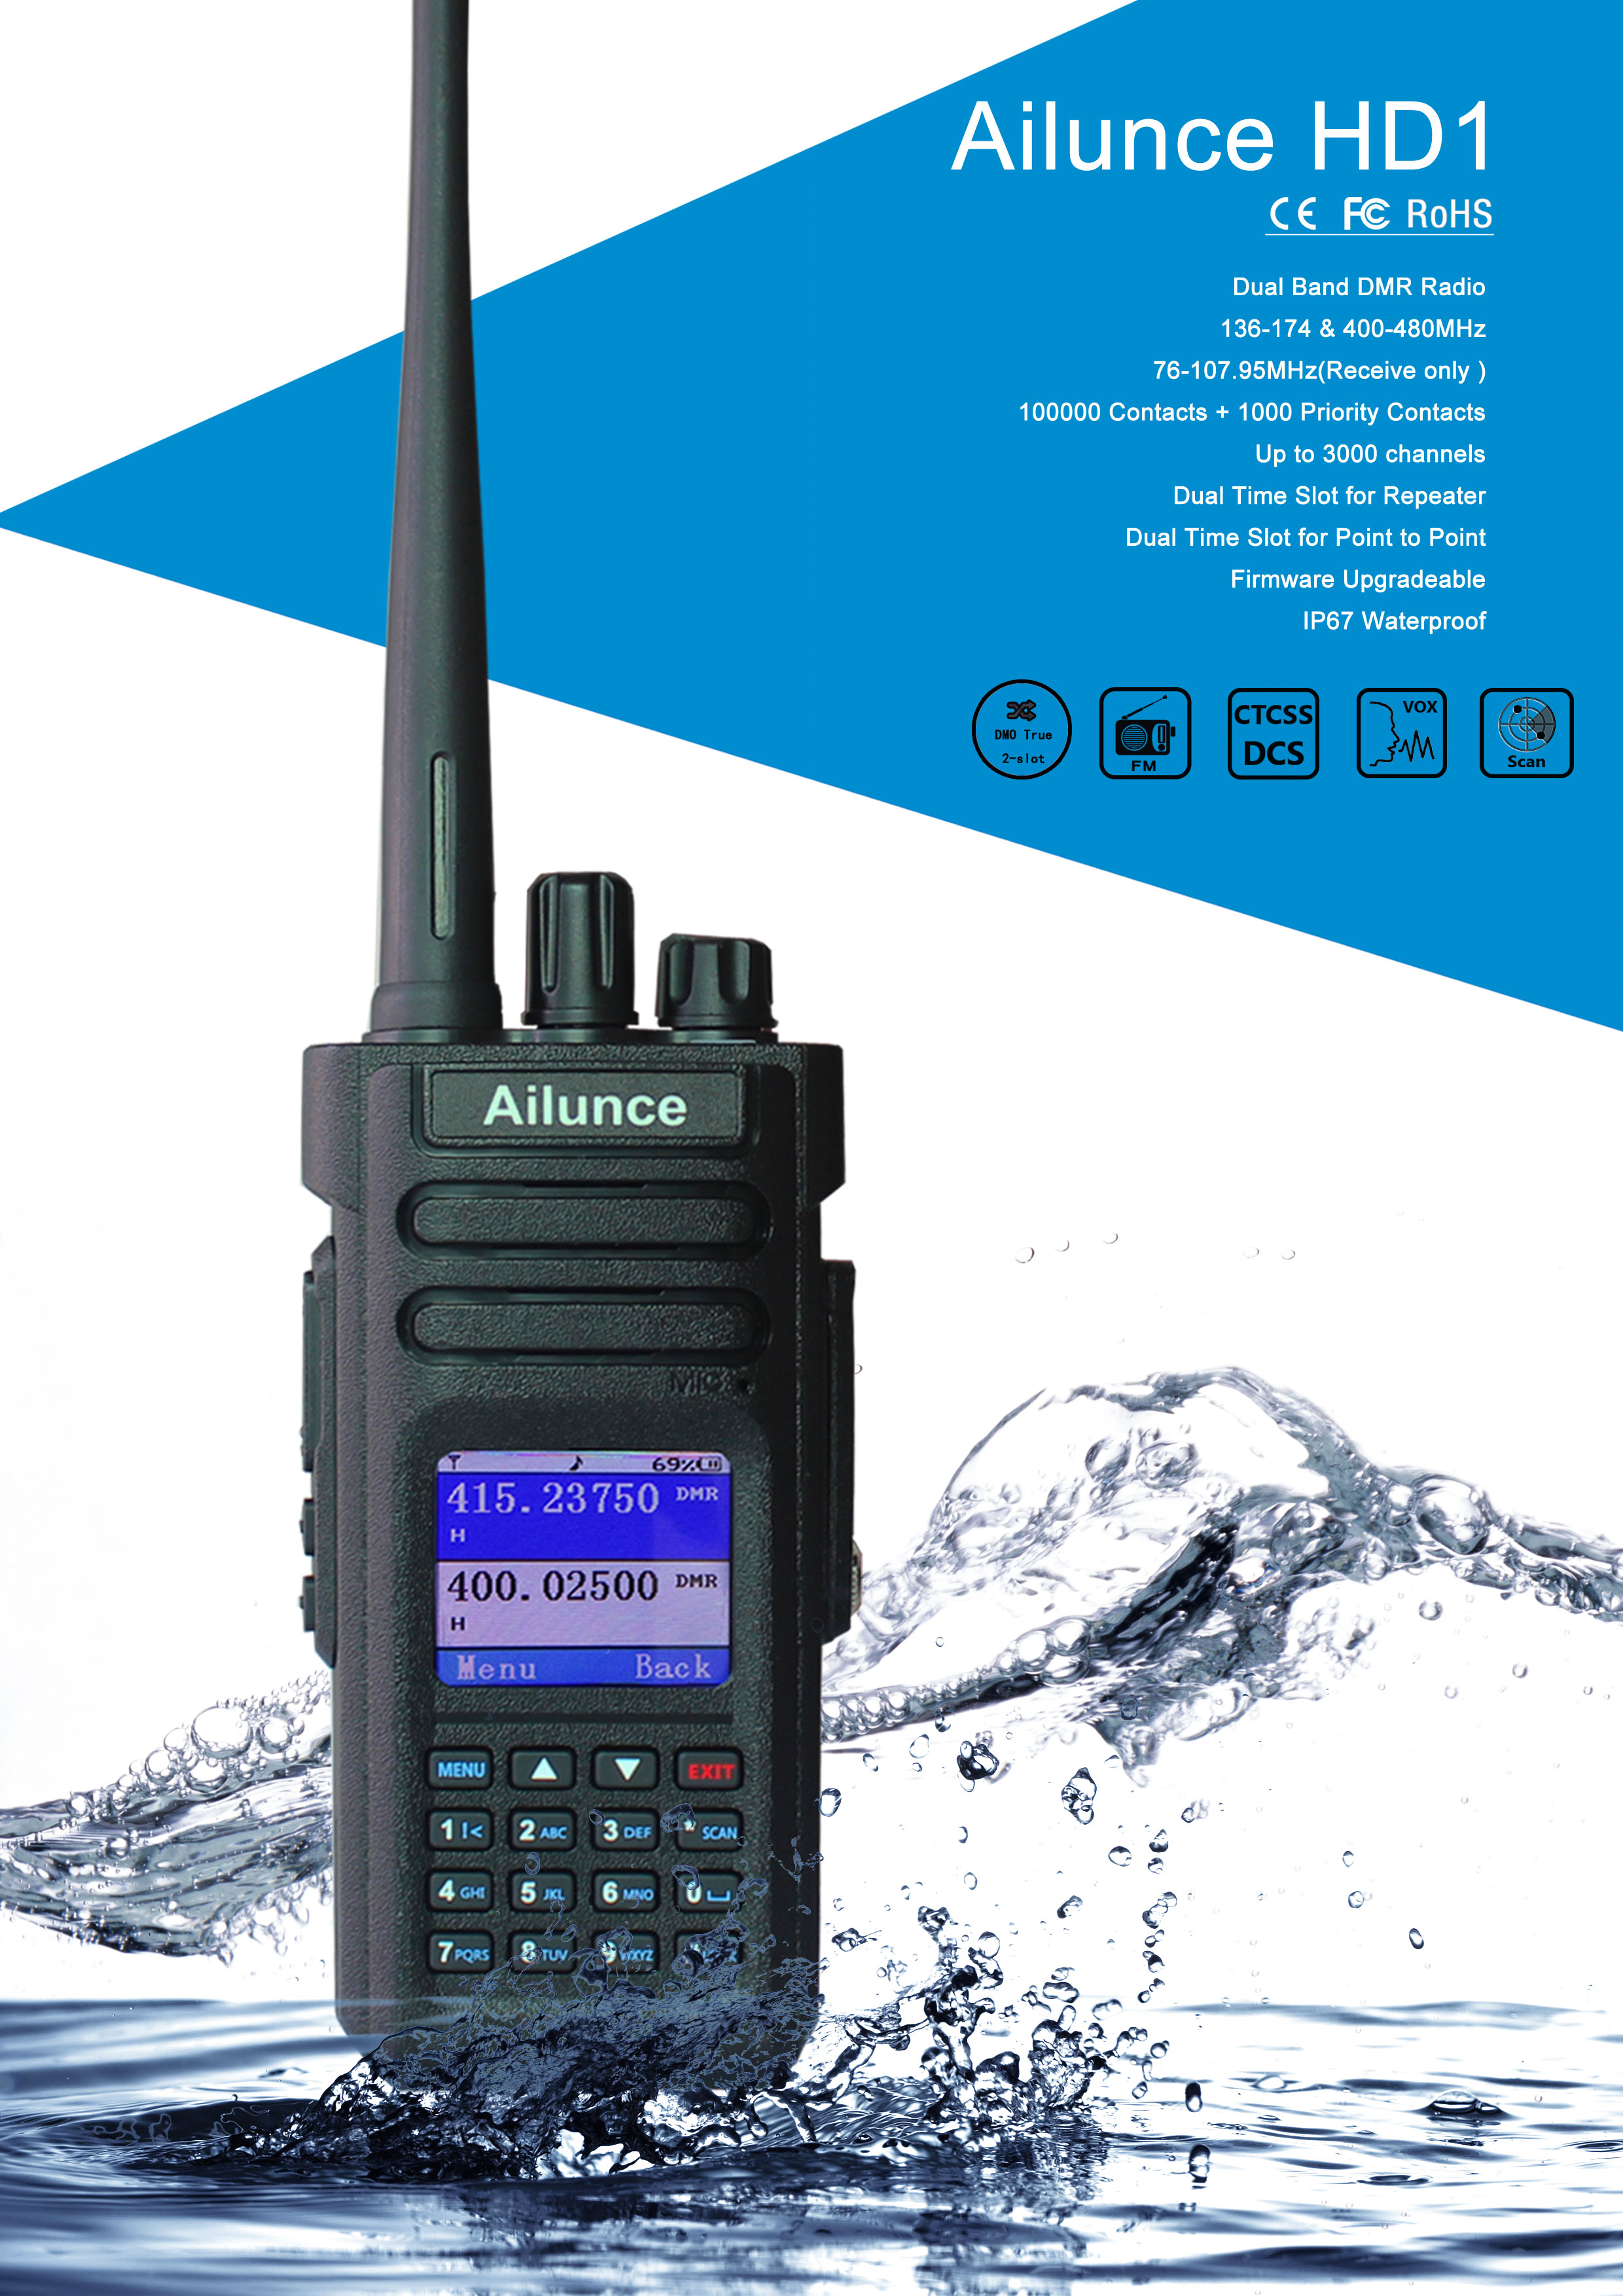 Ailunce HD1 High Power 10W IP67 Quad Band DMR Transceiver Waterproof Ham  Radio, View walkie talkie 10km range, Ailunce Product Details from Henan